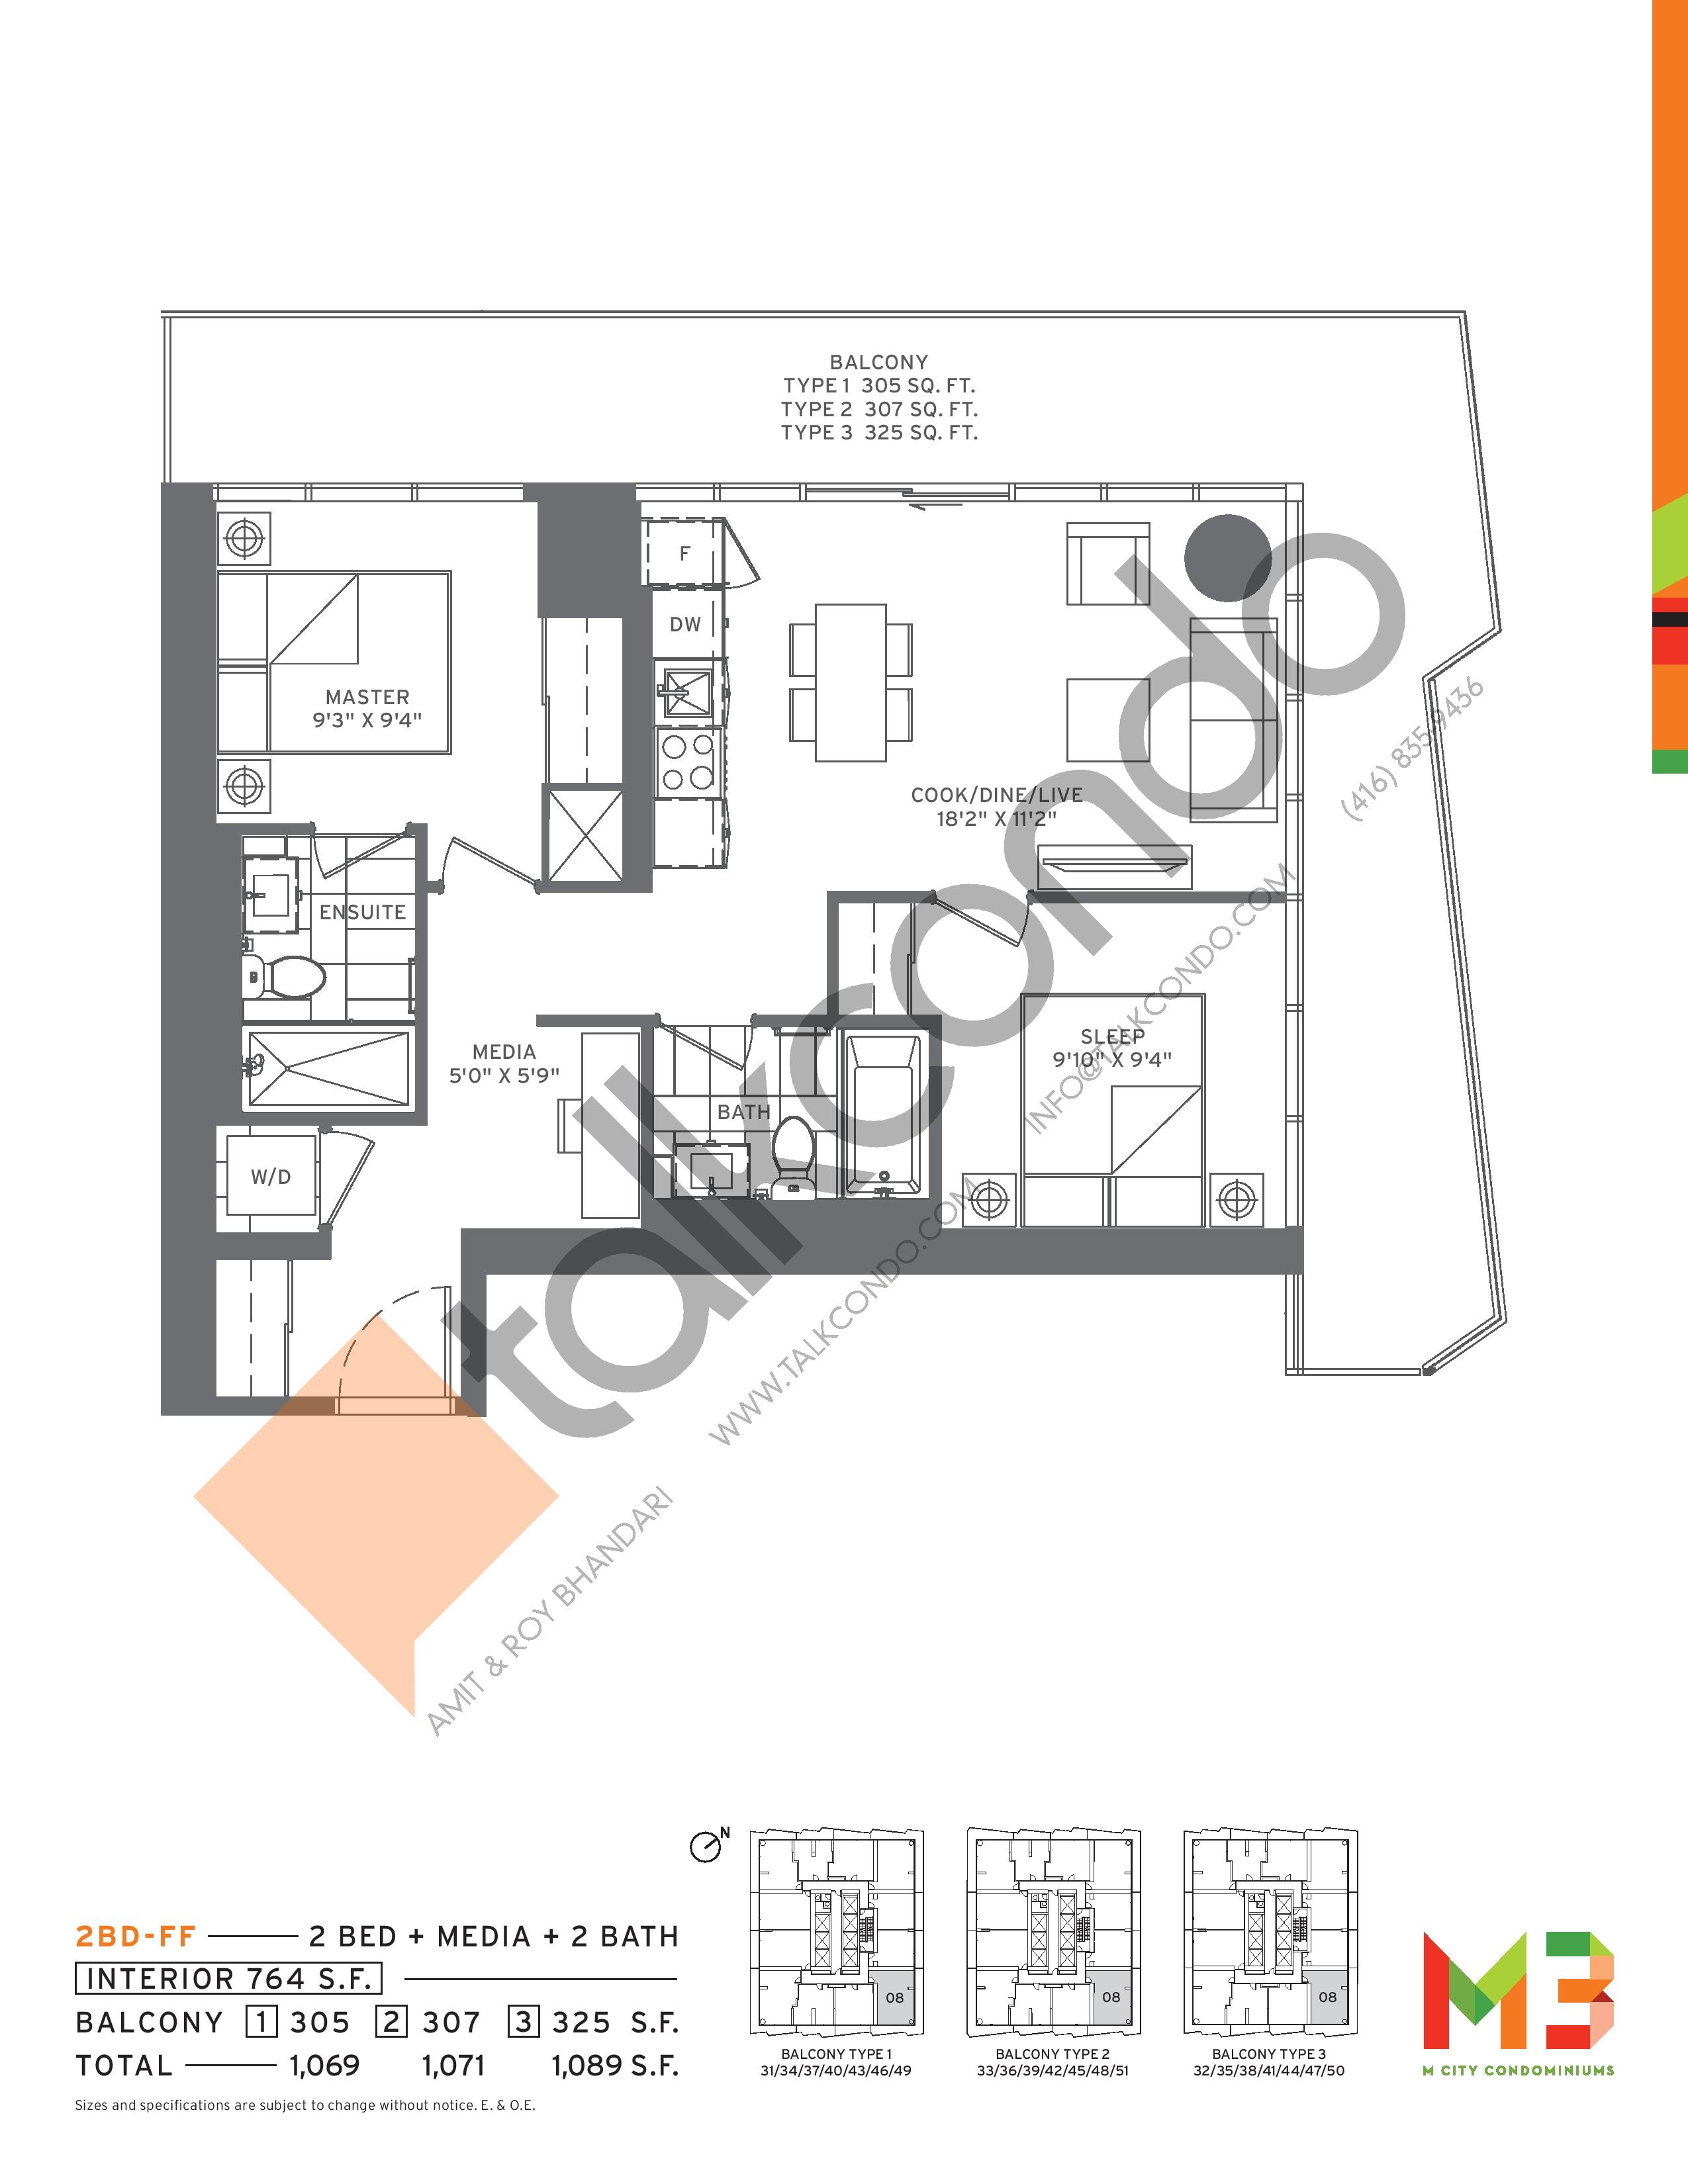 2BD-FF Floor Plan at M3 Condos - 764 sq.ft